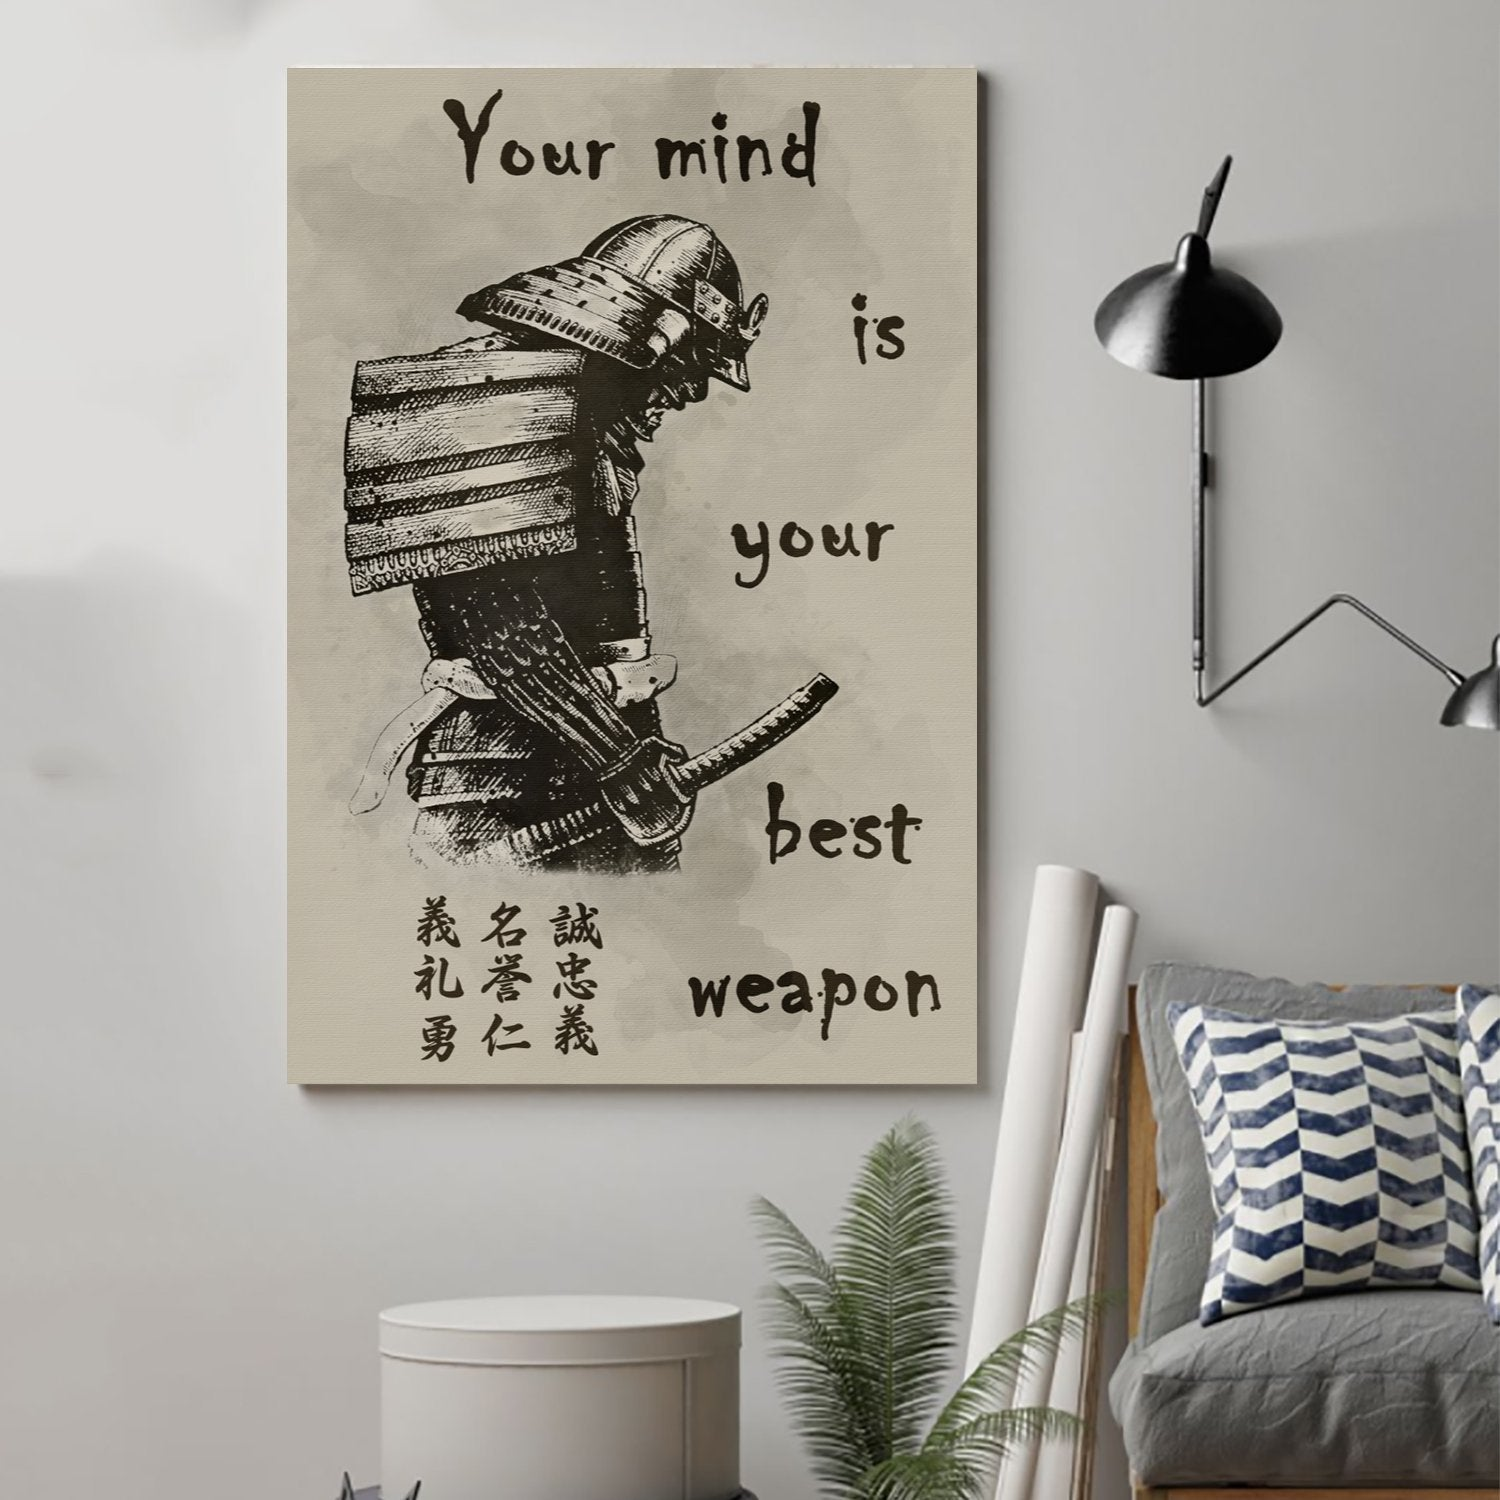 (cv122) samurai Poster - your mind is your best weapon